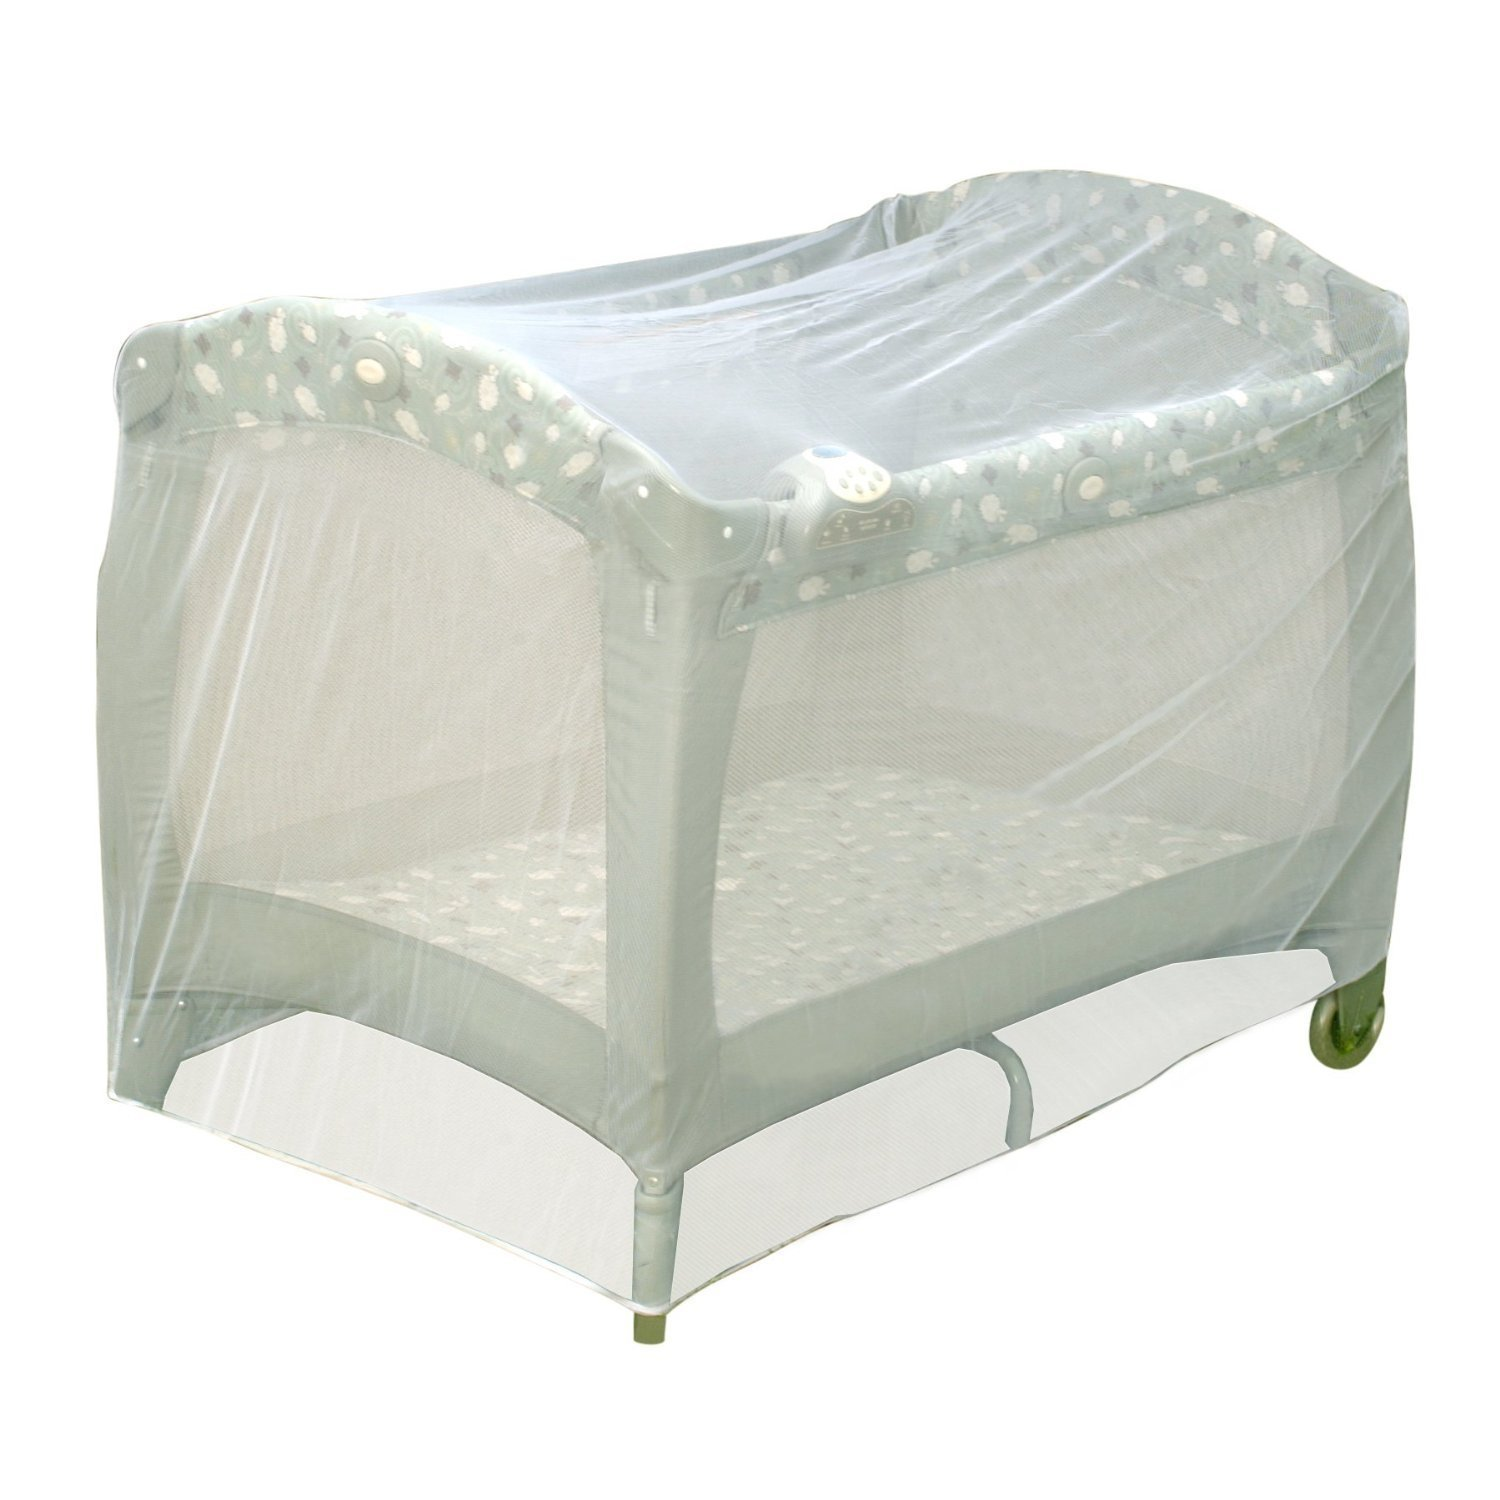 Amazon.com : Baby Crib Tent Safety Net Pop Up Canopy Cover